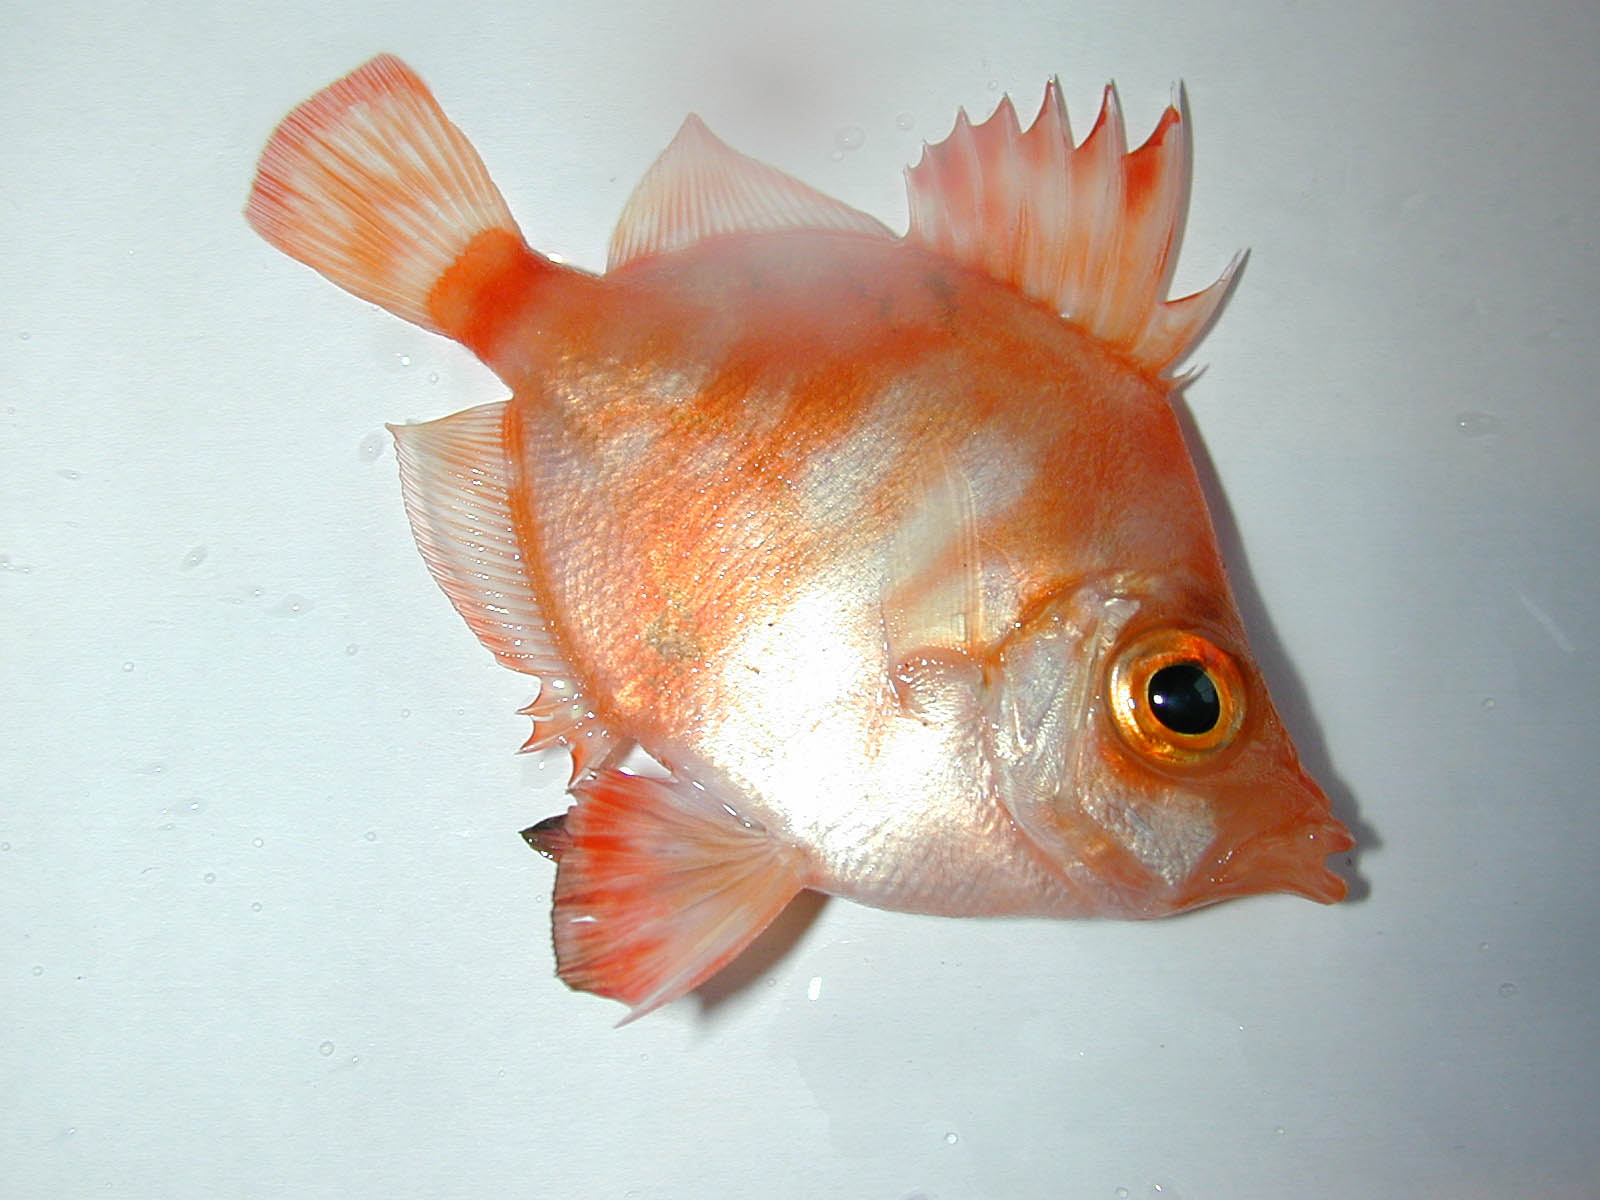 Boarfish from Hove (Photograph by Peter Weight)